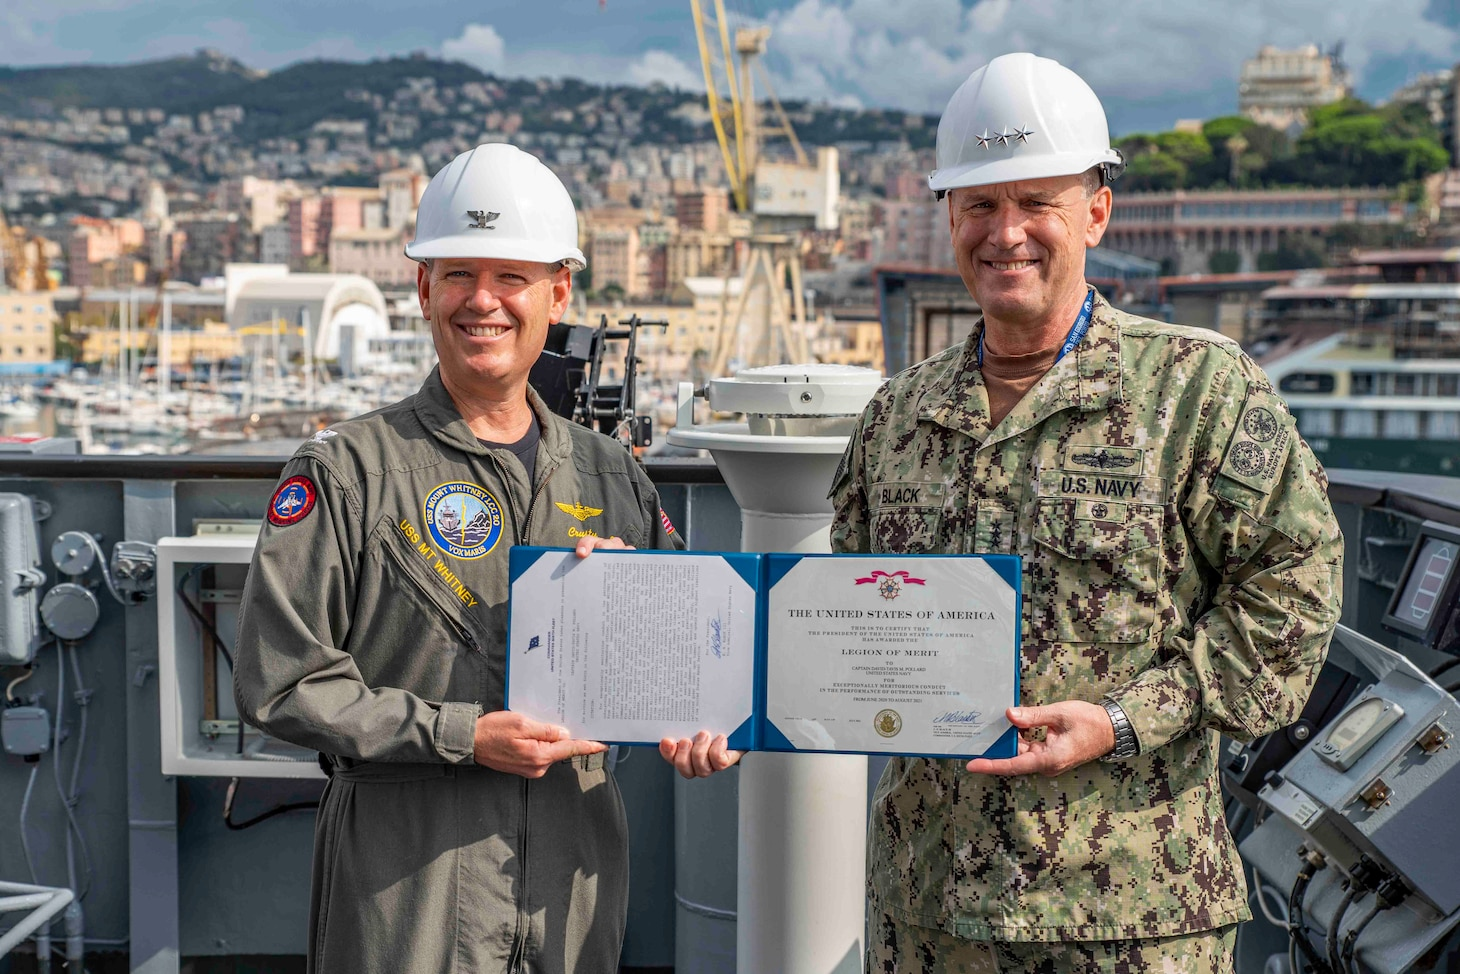 (Aug 31, 2021) Vice Adm. Gene Black, commander, U.S. Sixth Fleet, presents Capt. David Pollard, commanding officer of the Blue Ridge-class command and control ship USS Mount Whitney (LCC 20), with an award during the ship's change of command in San Giorgio Del Porto in Genoa, Italy, August, 31, 2021.  Mount Whitney, the U.S. Sixth Fleet flagship, homeported in Gaeta, Italy entered its regularly scheduled overhaul to make improvements in order to increase the security and stability of the U.S. Sixth Fleet area of operations.